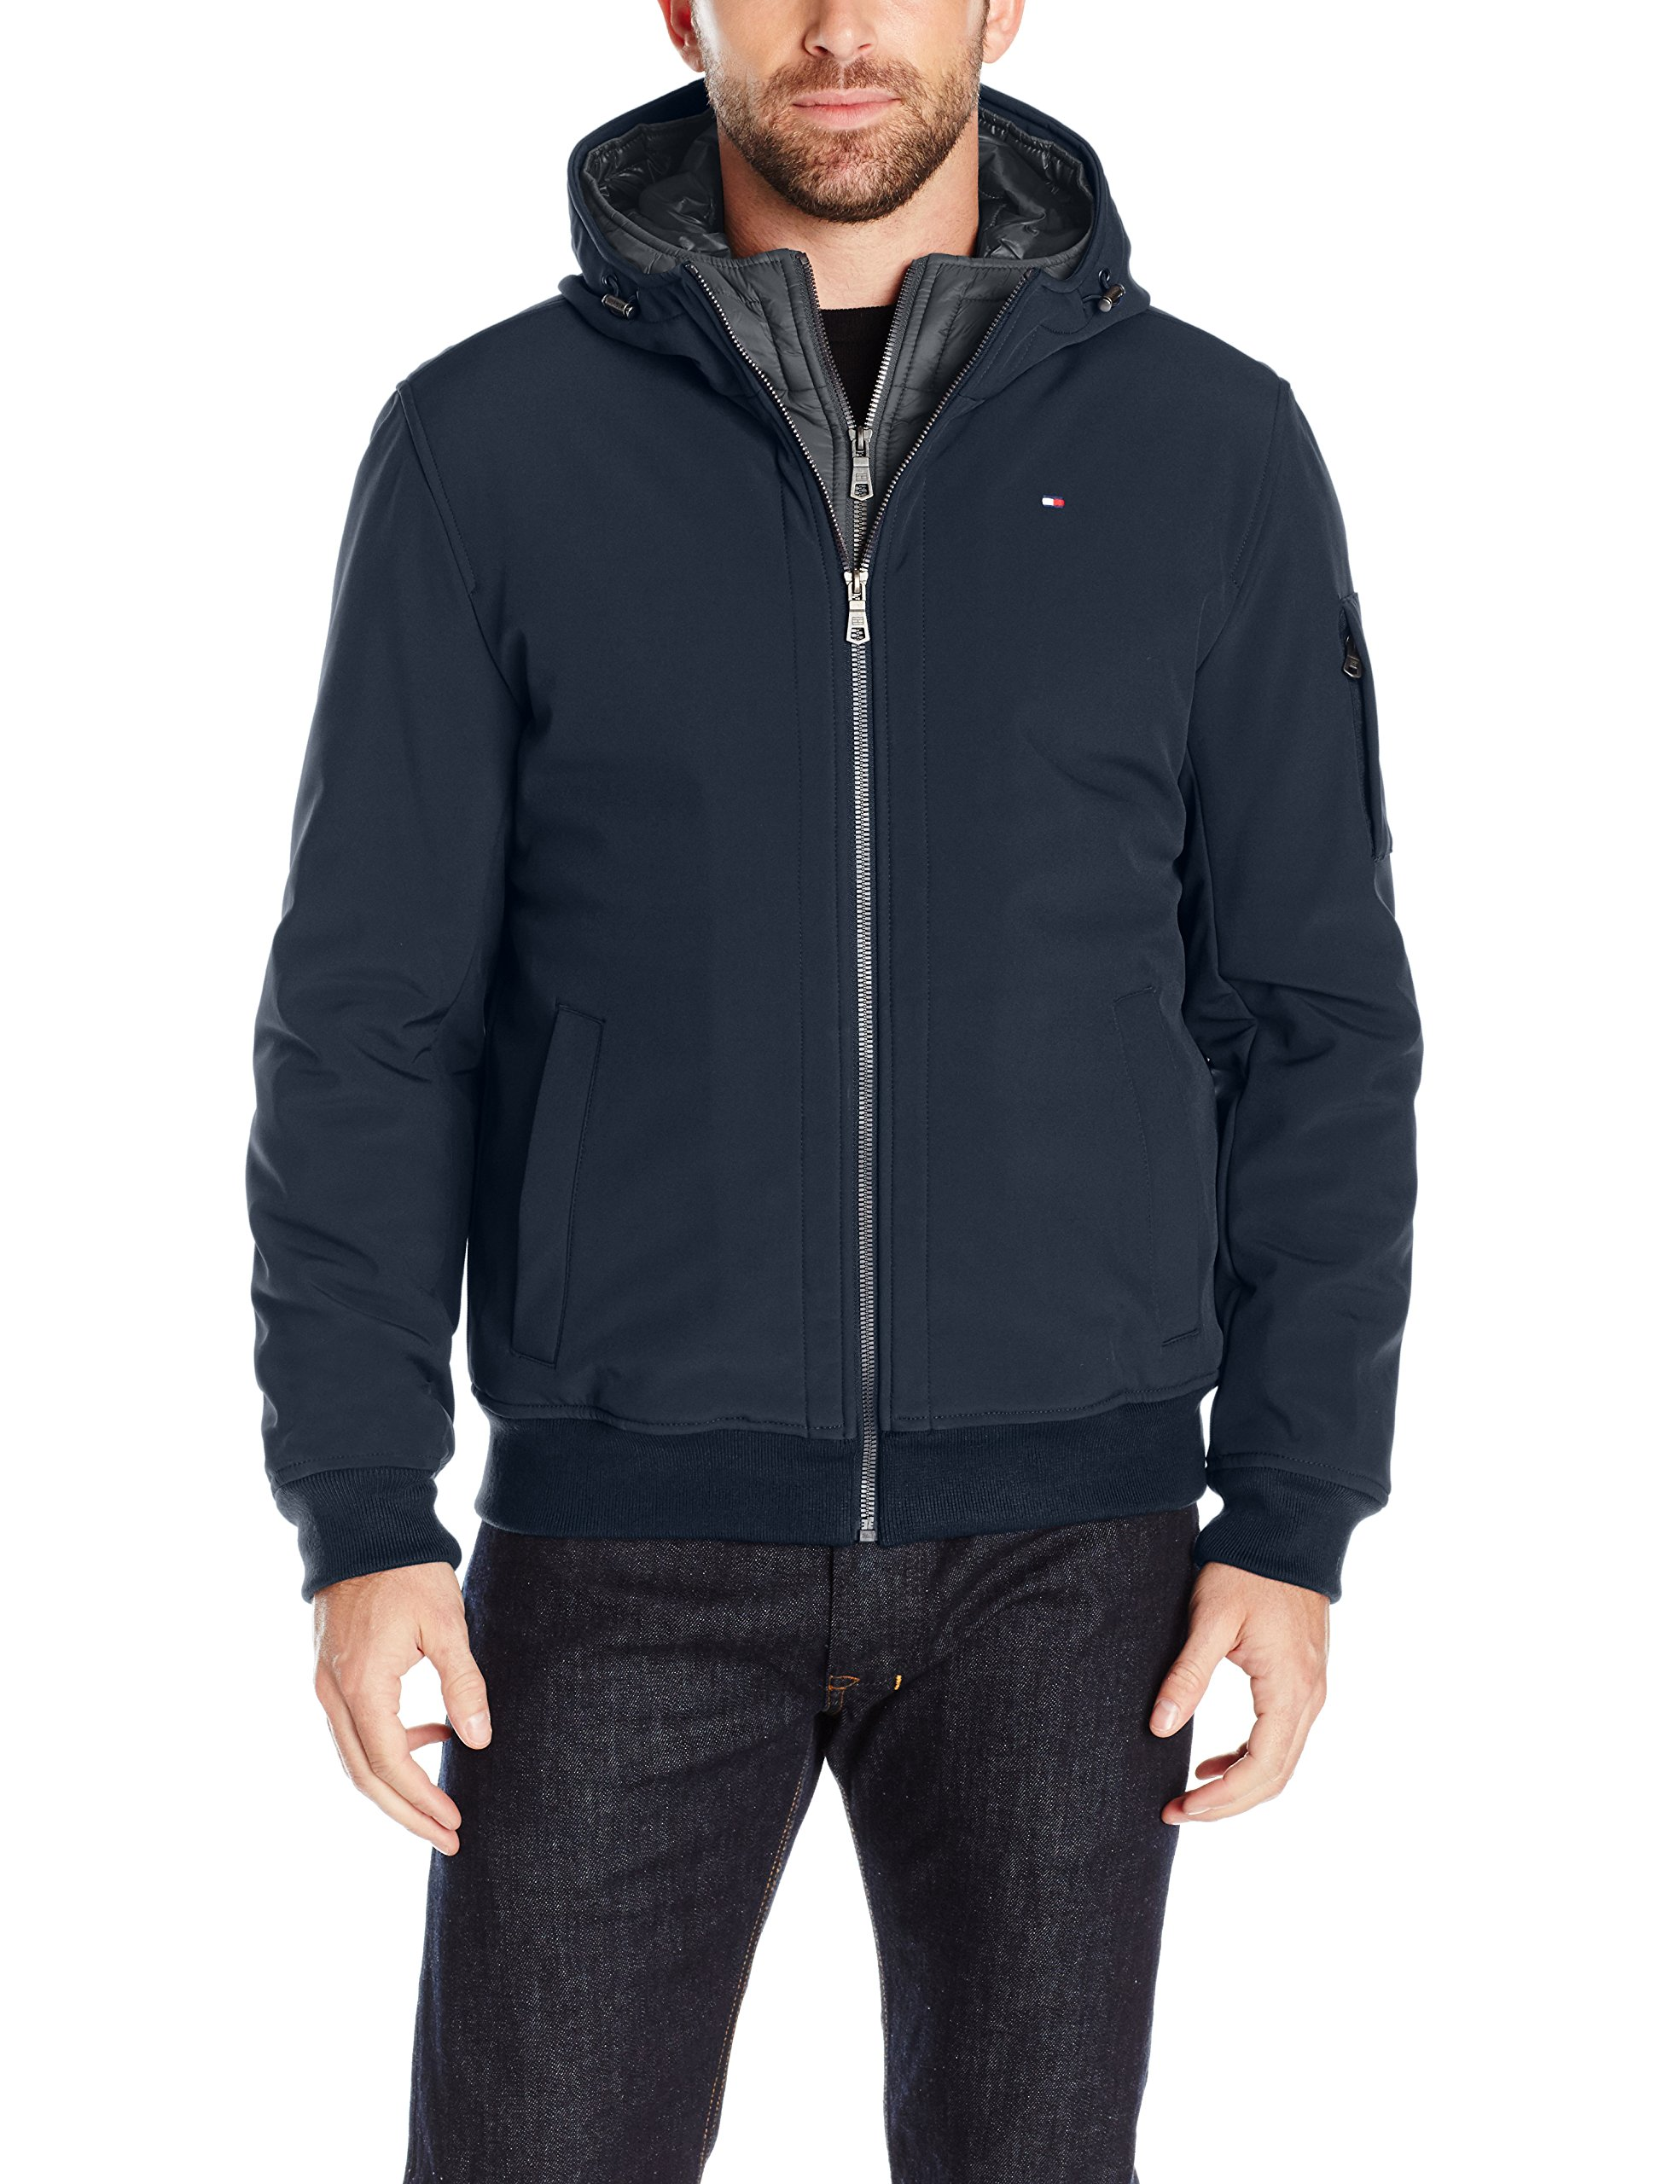 Tommy Hilfiger Men's Soft Shell Fashion Bomber with Contrast Bib and Hood, Midnight/Heather Charcoal, Medium